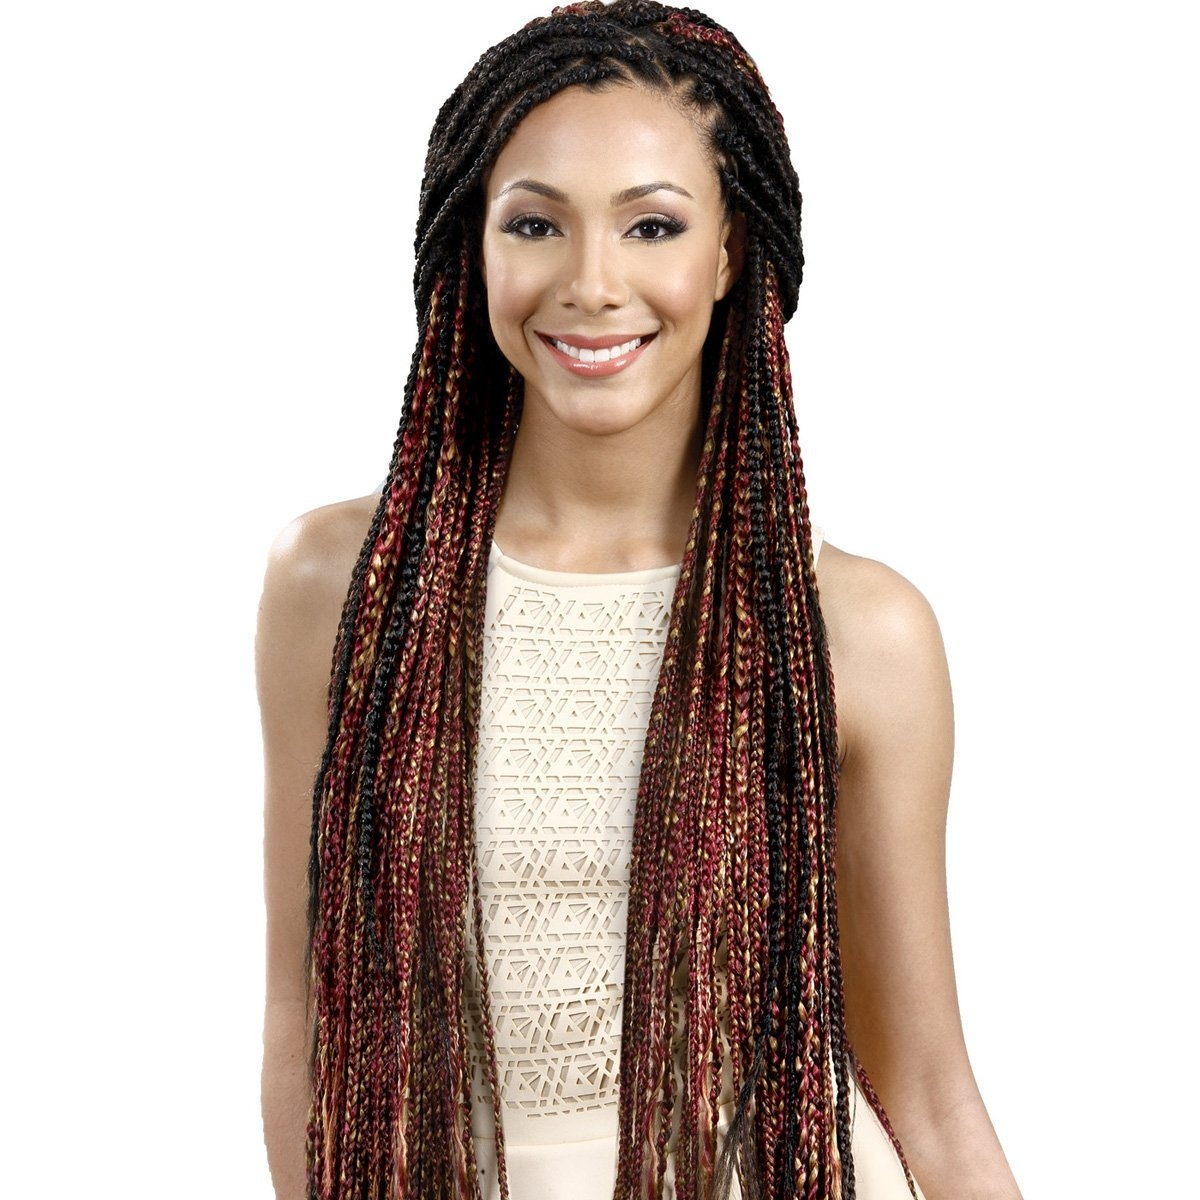 Bobbi Boss African Roots X Pro 88 Jumbo Braid Bulk Inch 220 Cm Synthetic Hair Elegant By Braids Online For Beauty In The United